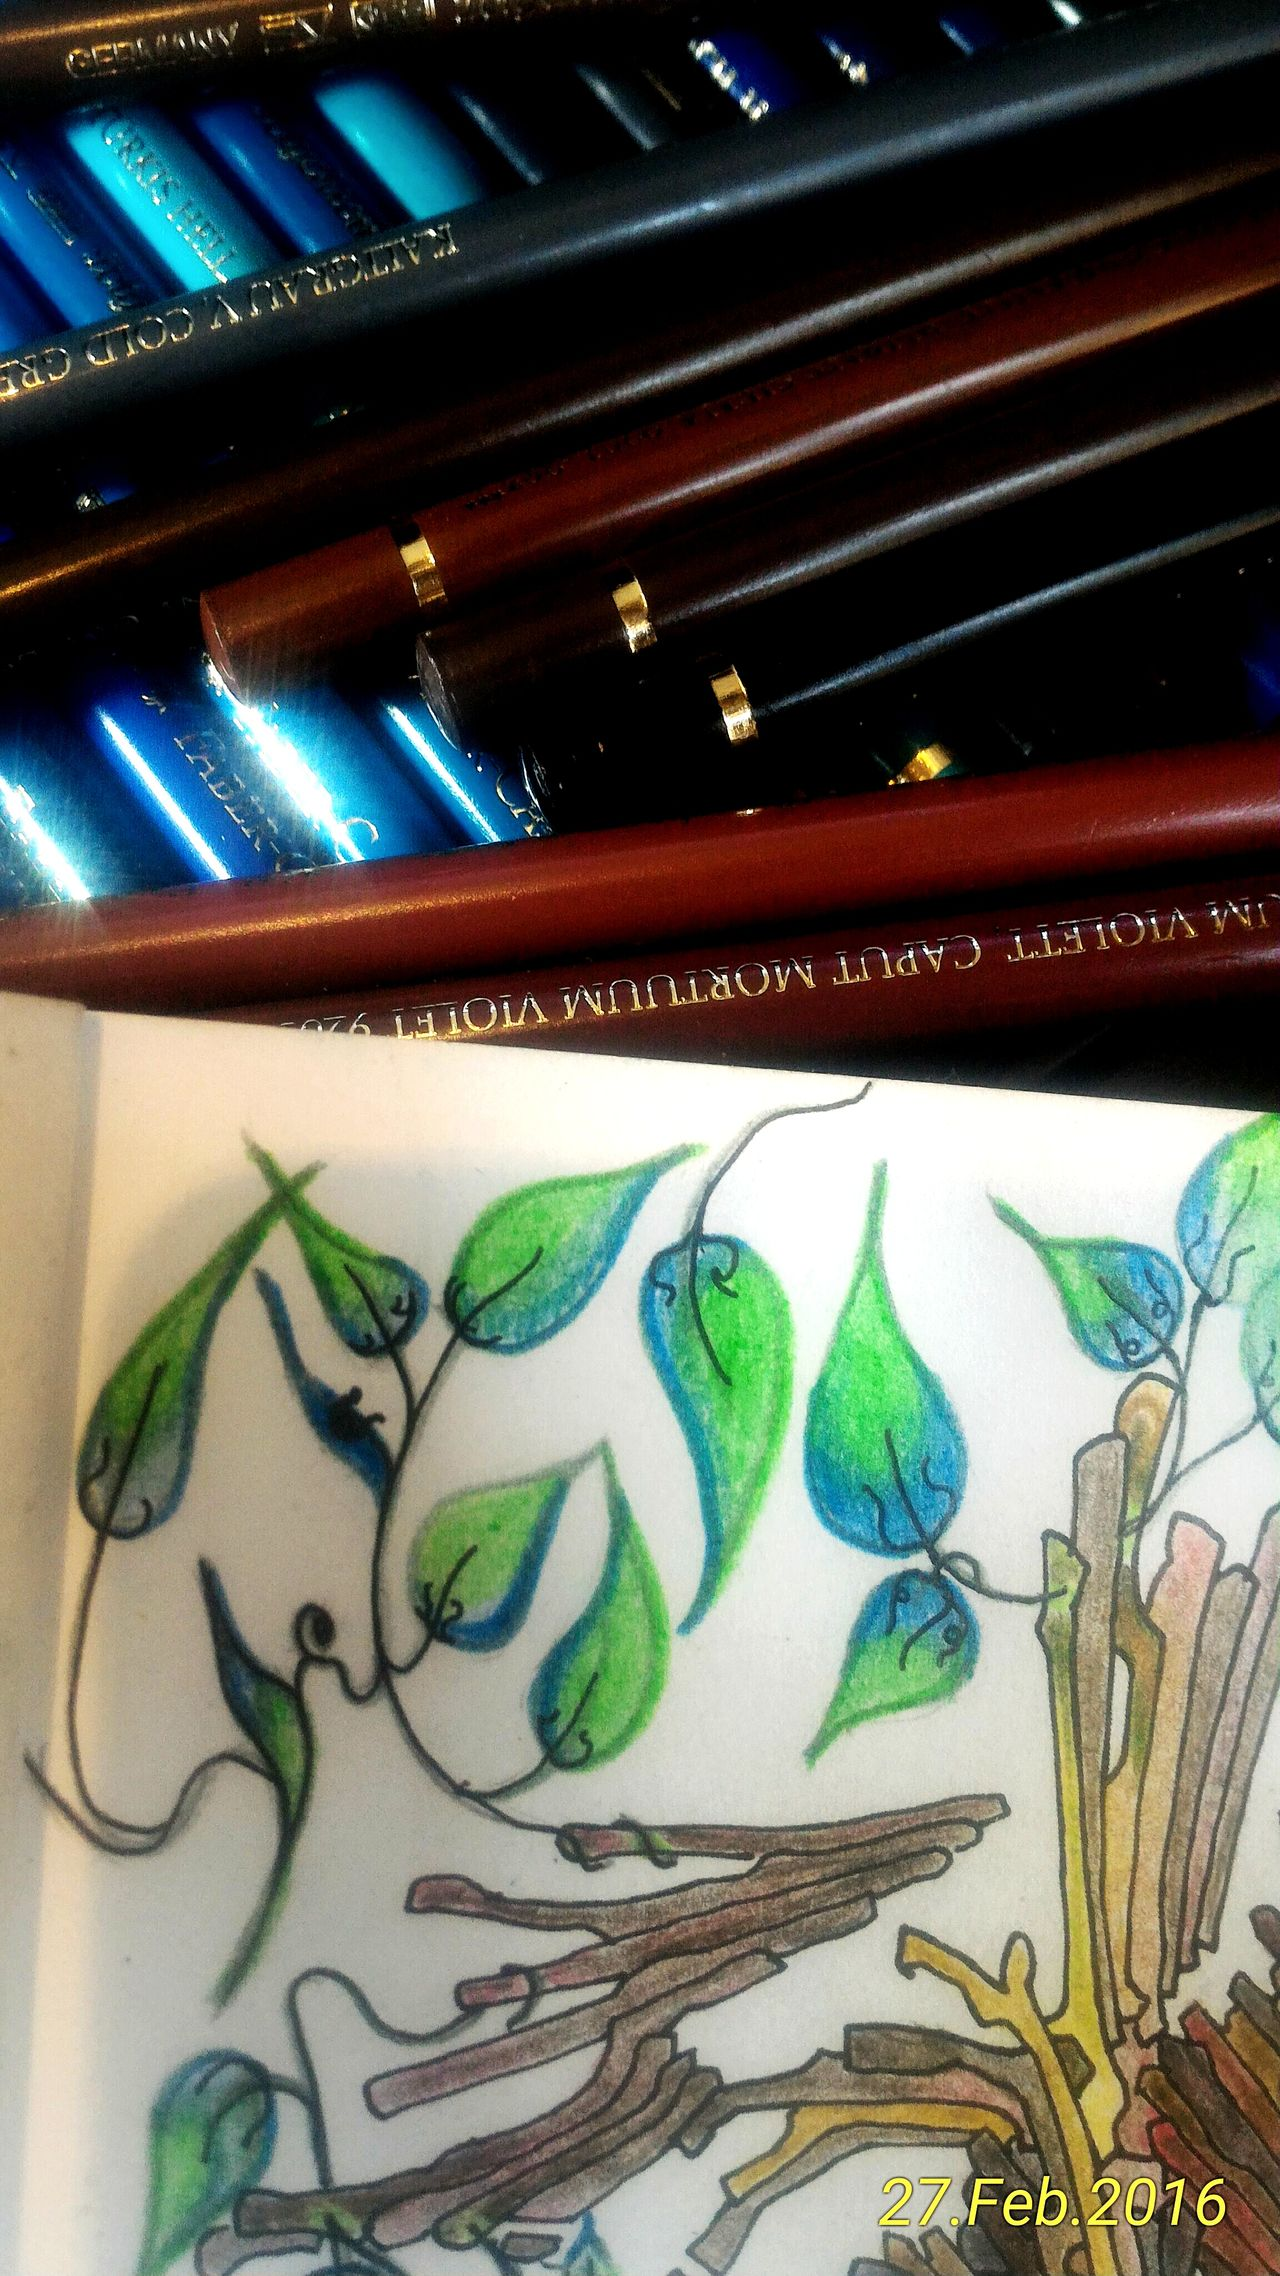 Fabercastell Colours Colourpencils Leaves Relaxing PeterDeligdisch